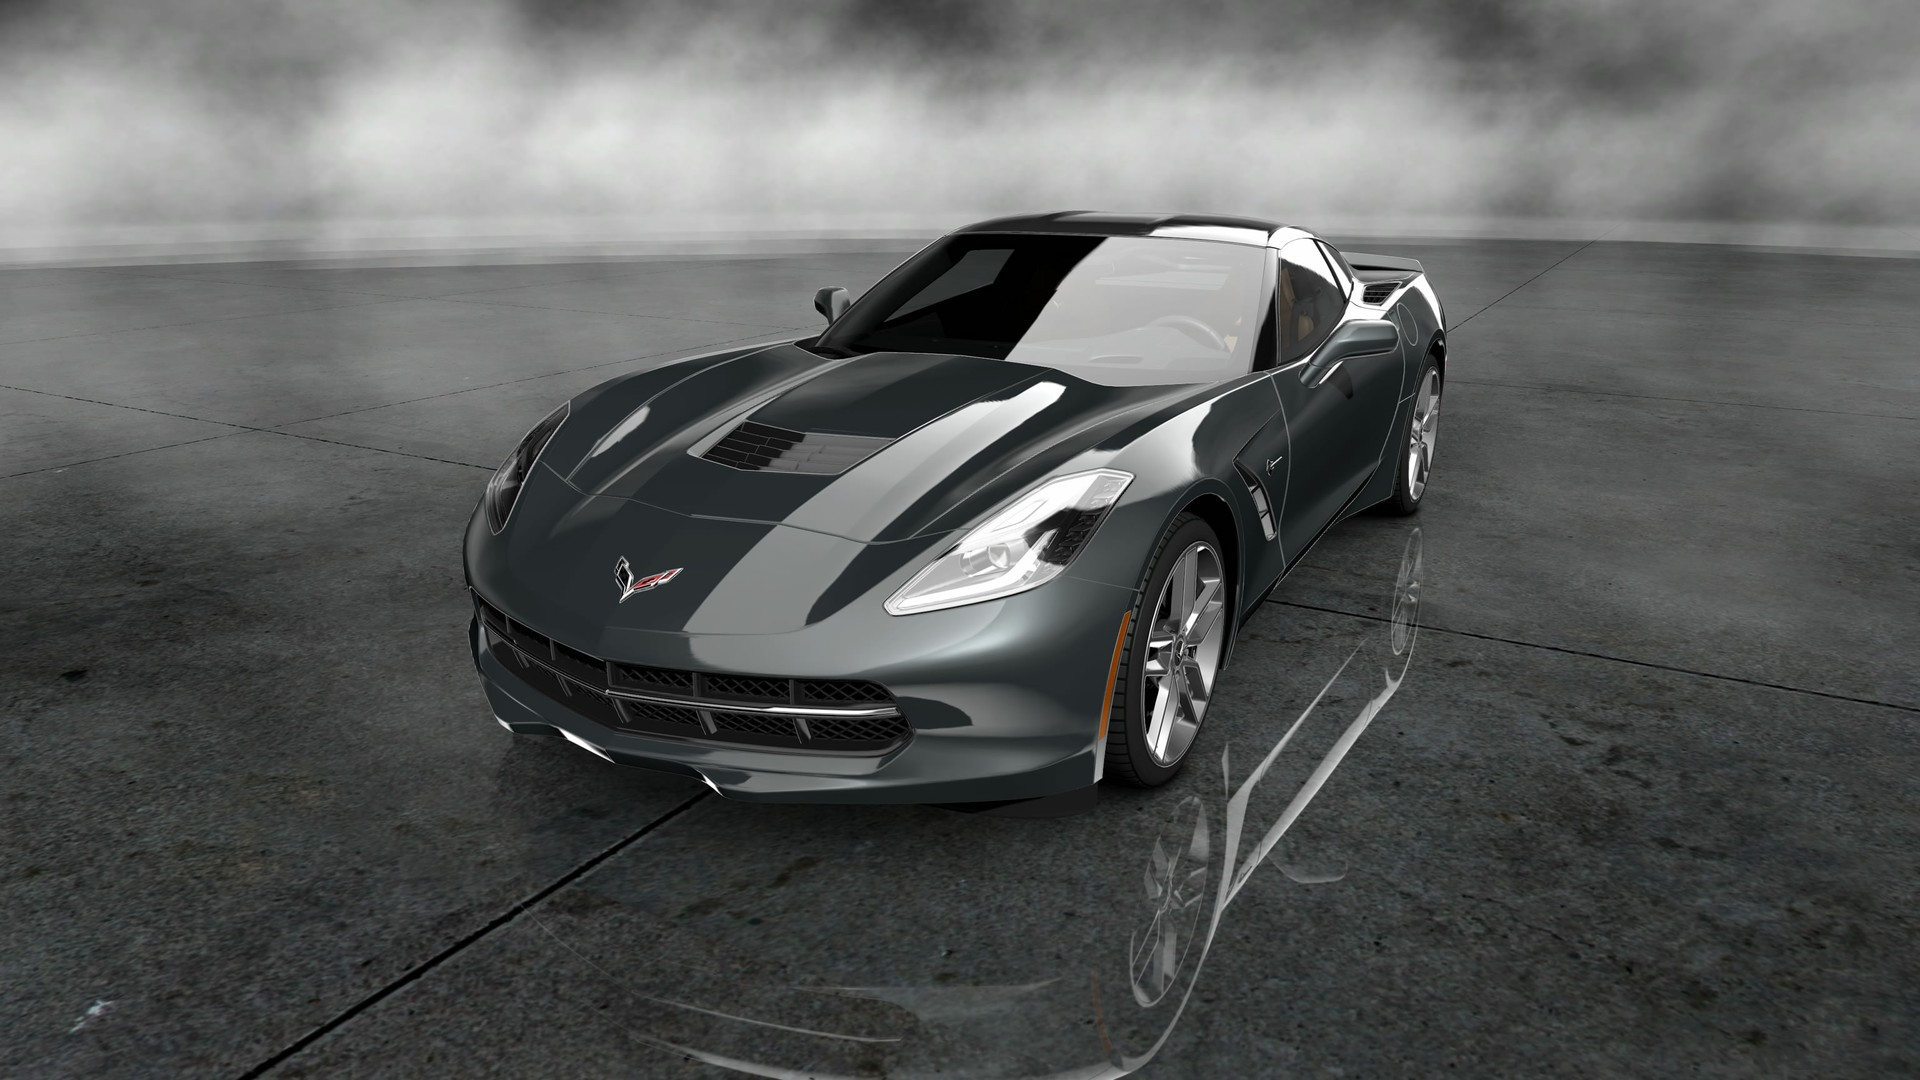 C7 CORVETTE  Cars HD Wallpapers